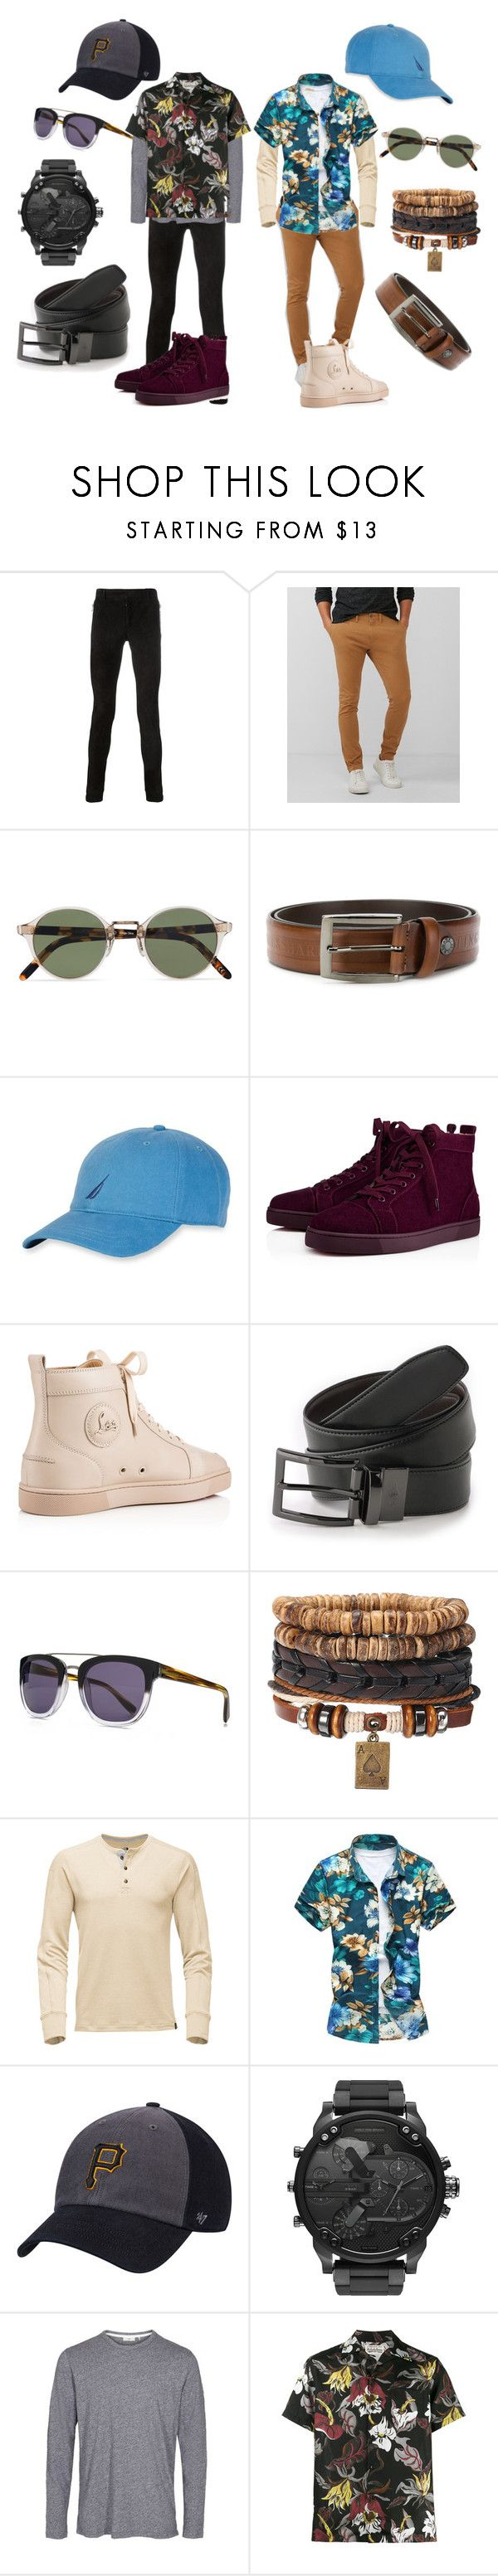 """Kai's Weekend Casual"" by lora-86 ❤ liked on Polyvore featuring Balmain, Express, Oliver Peoples, Paul & Shark, Nautica, Christian Louboutin, Dockers, French Connection, Wacko Maria and men's fashion"